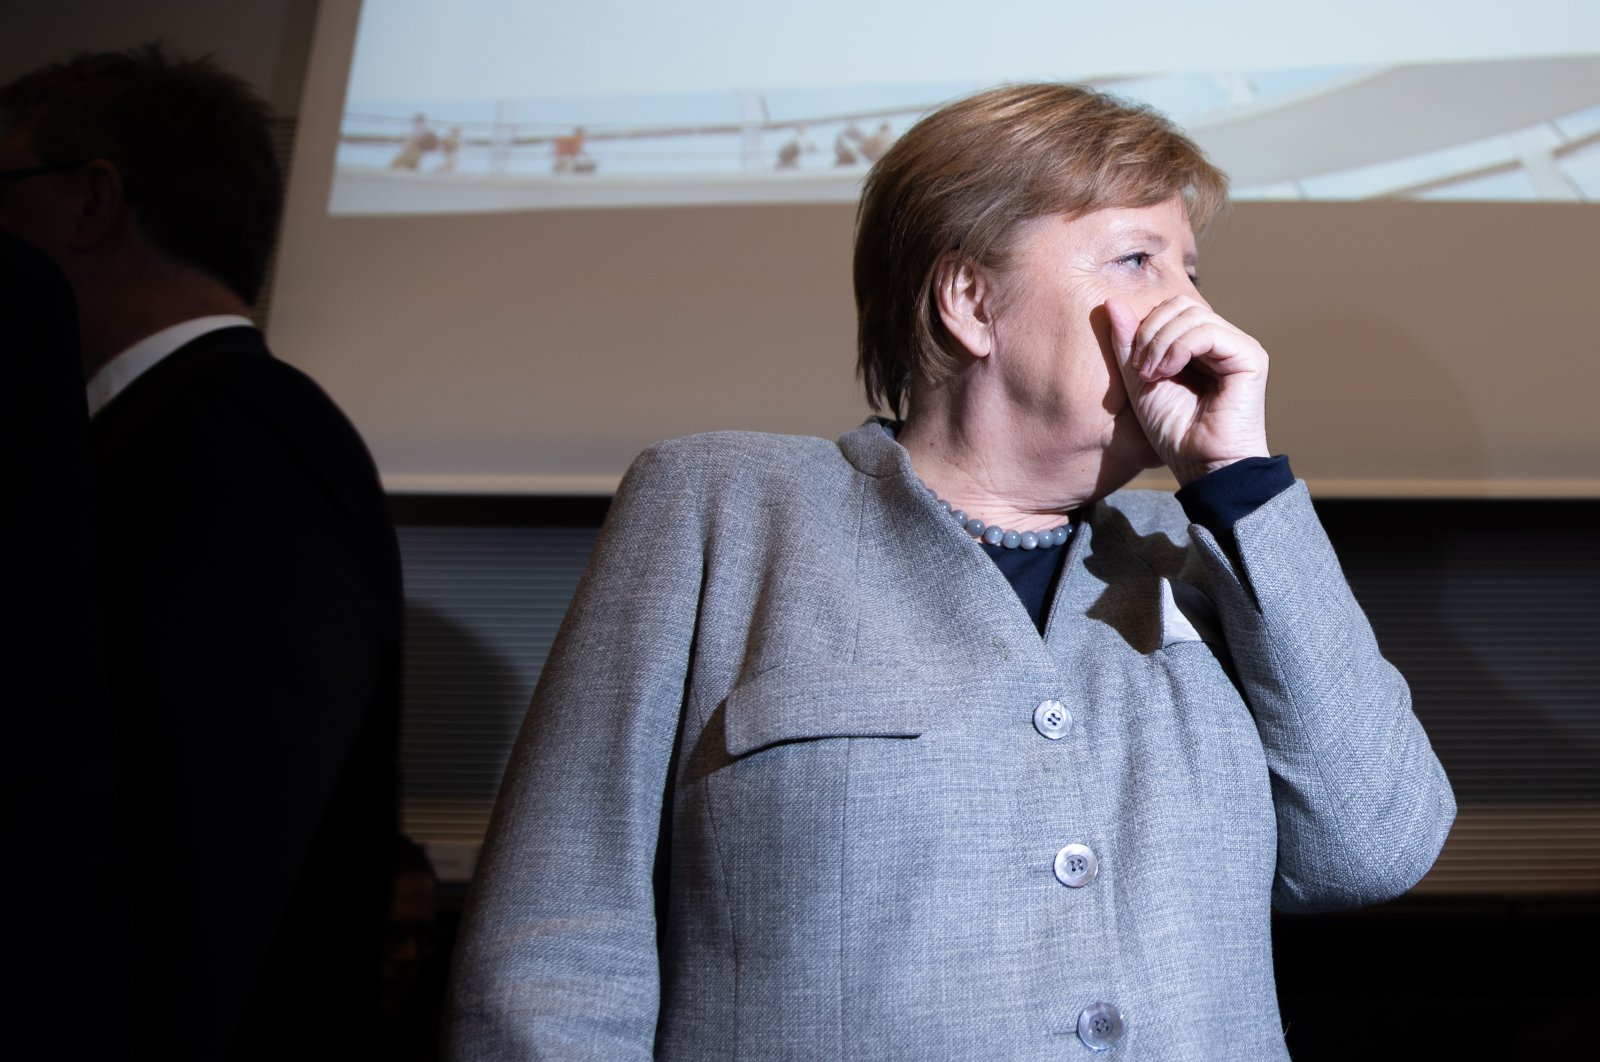 German Chancellor Angela Merkel attends a faction meeting of the Christian Democratic Union (CDU) and the Christian Social Union (CSU) at the German parliament Bundestag in Berlin, Germany, March 10, 2020. (EPA Photo)